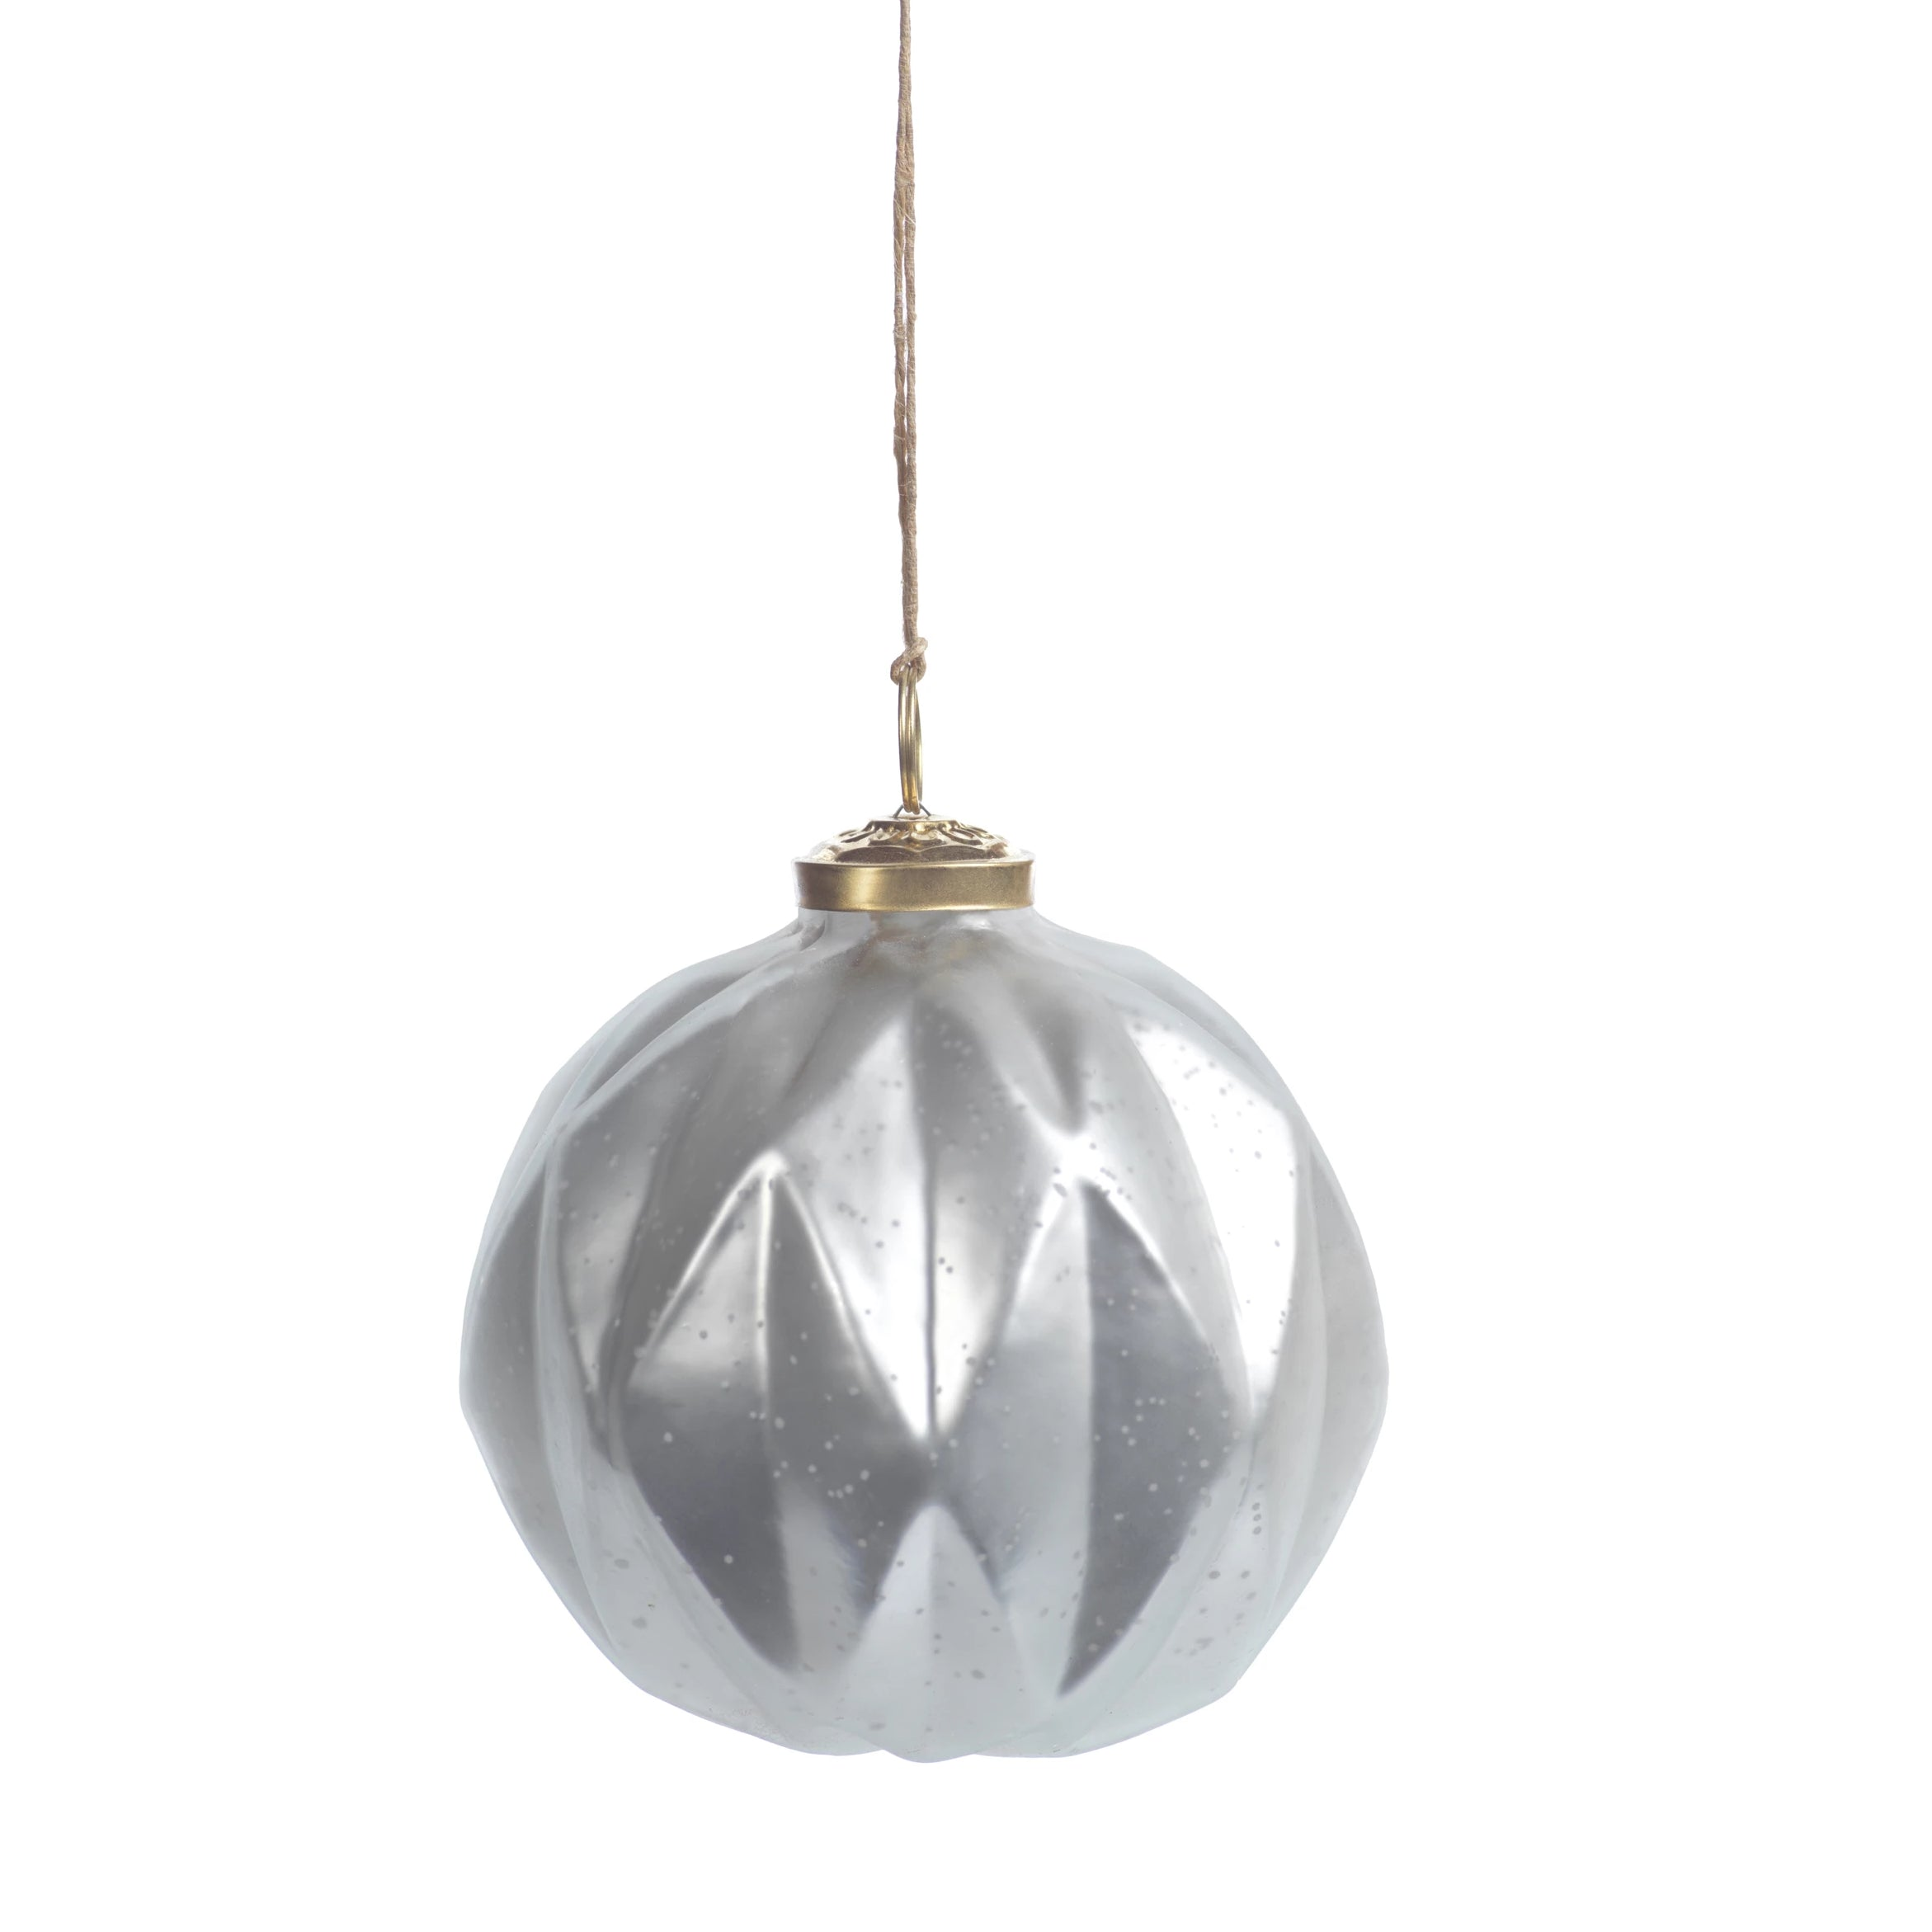 Faceted Glass Ornaments - Silver - CARLYLE AVENUE